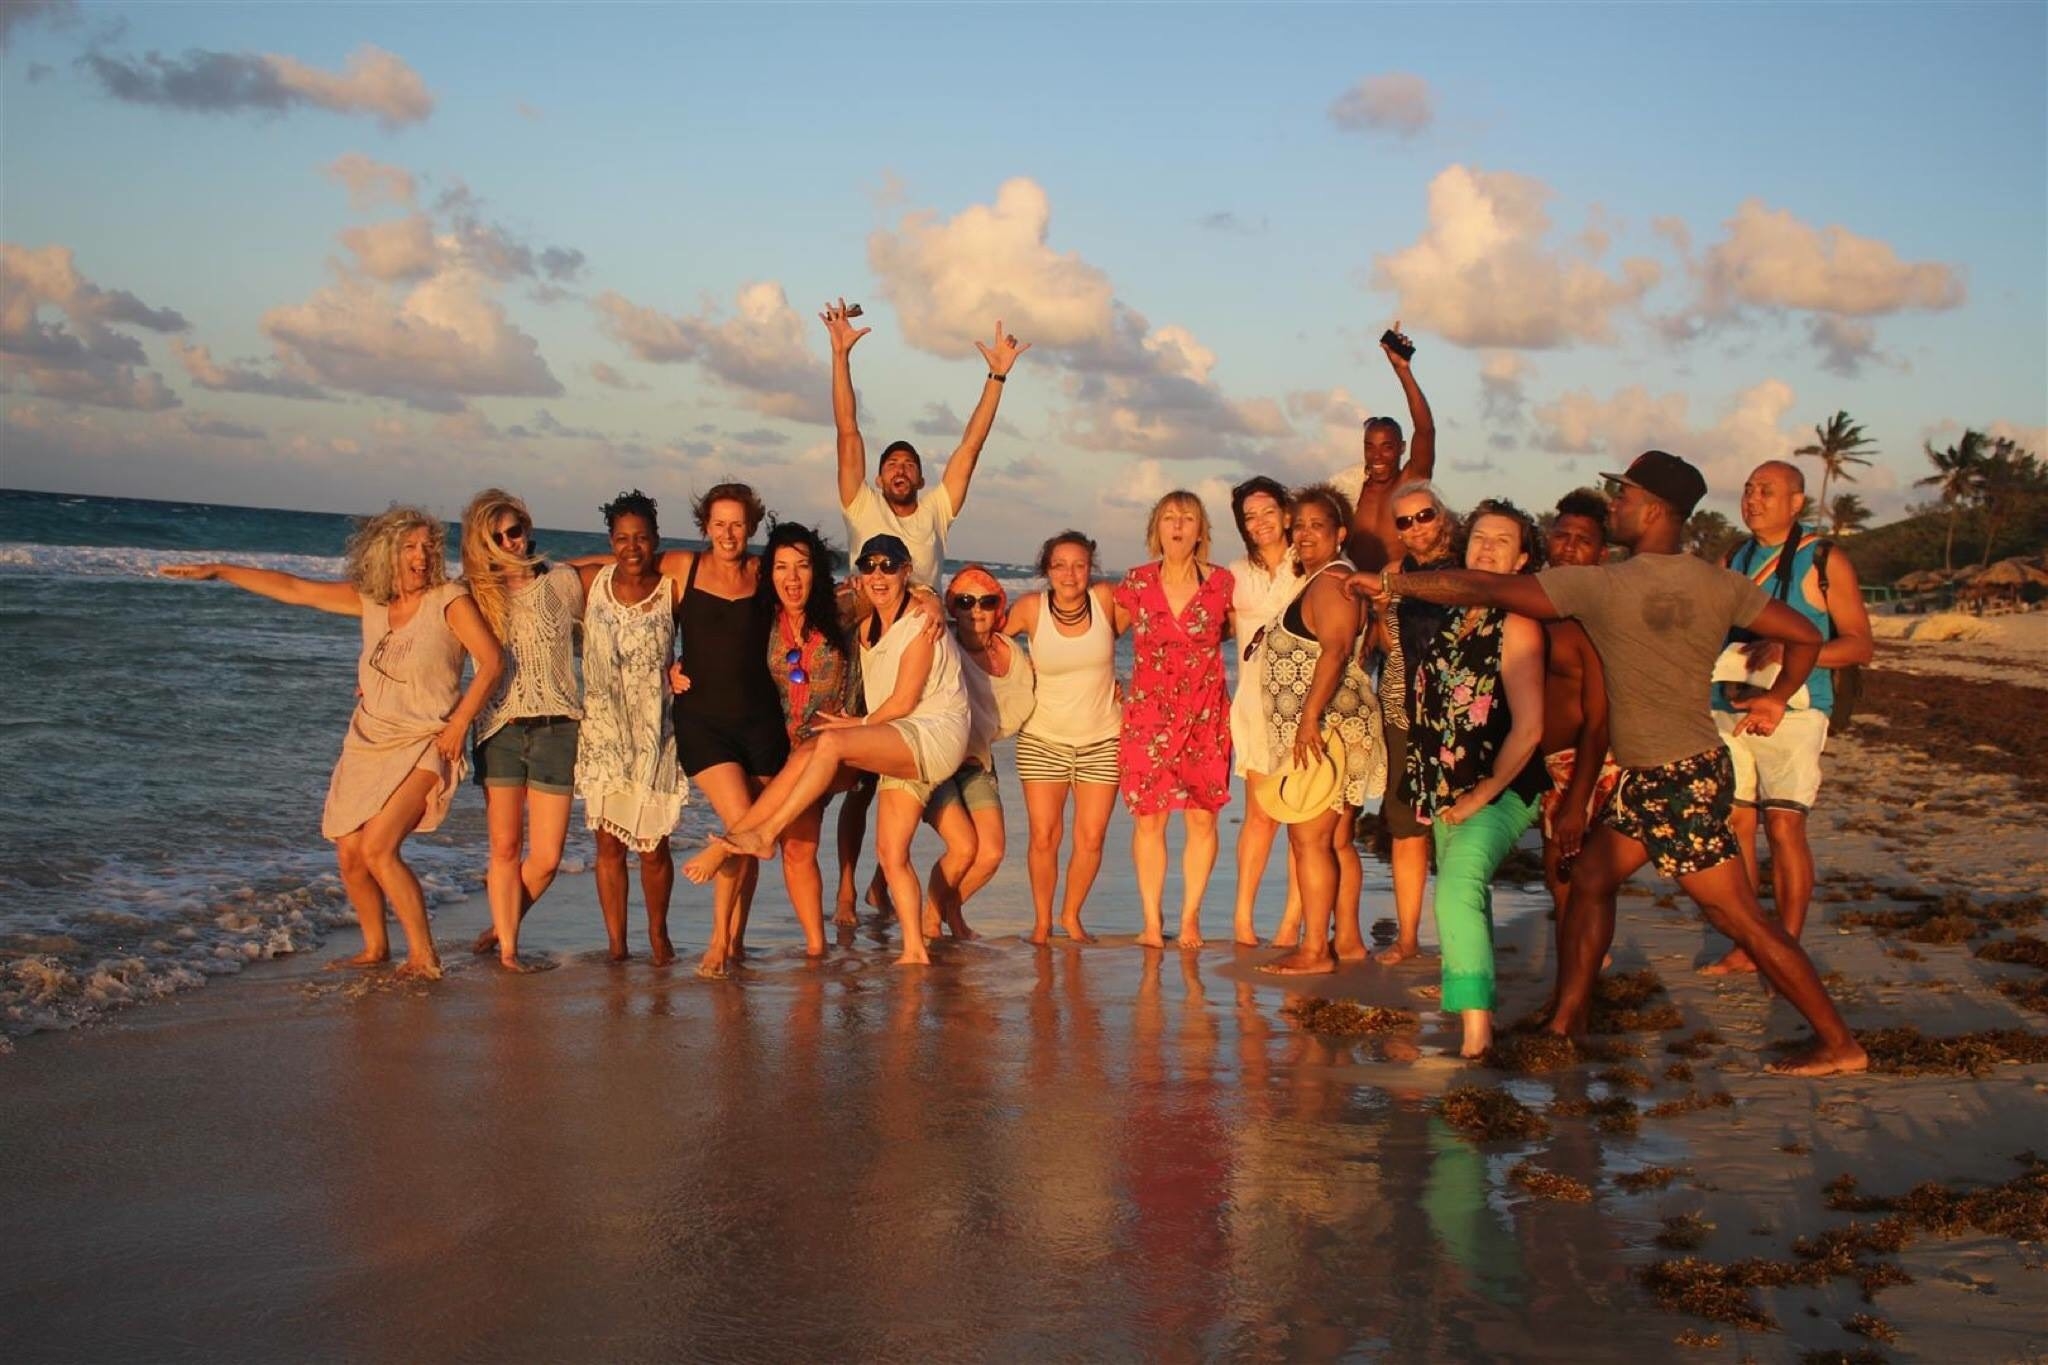 Cuba Havana Evening beach group